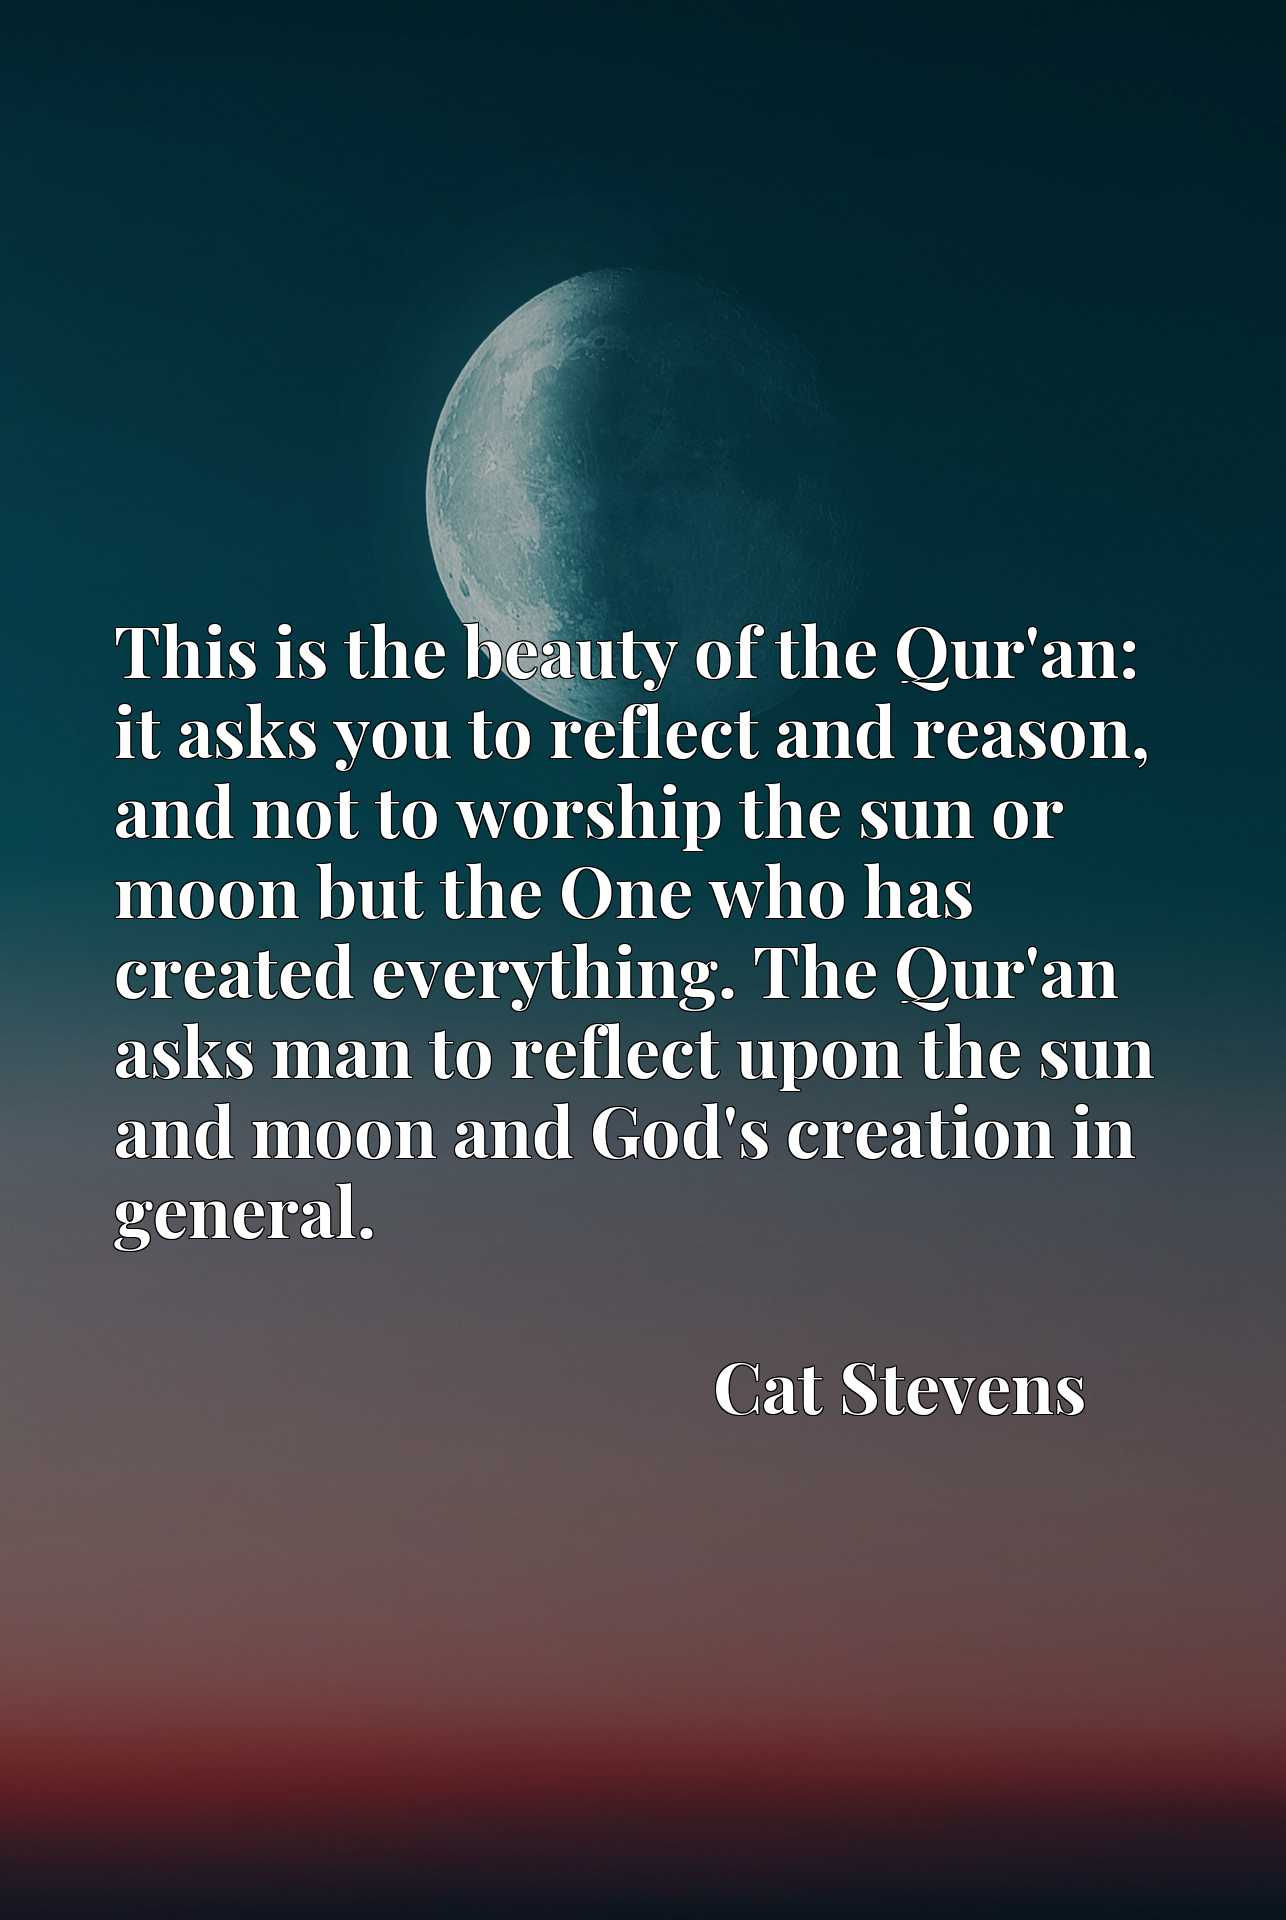 This is the beauty of the Qur'an: it asks you to reflect and reason, and not to worship the sun or moon but the One who has created everything. The Qur'an asks man to reflect upon the sun and moon and God's creation in general.